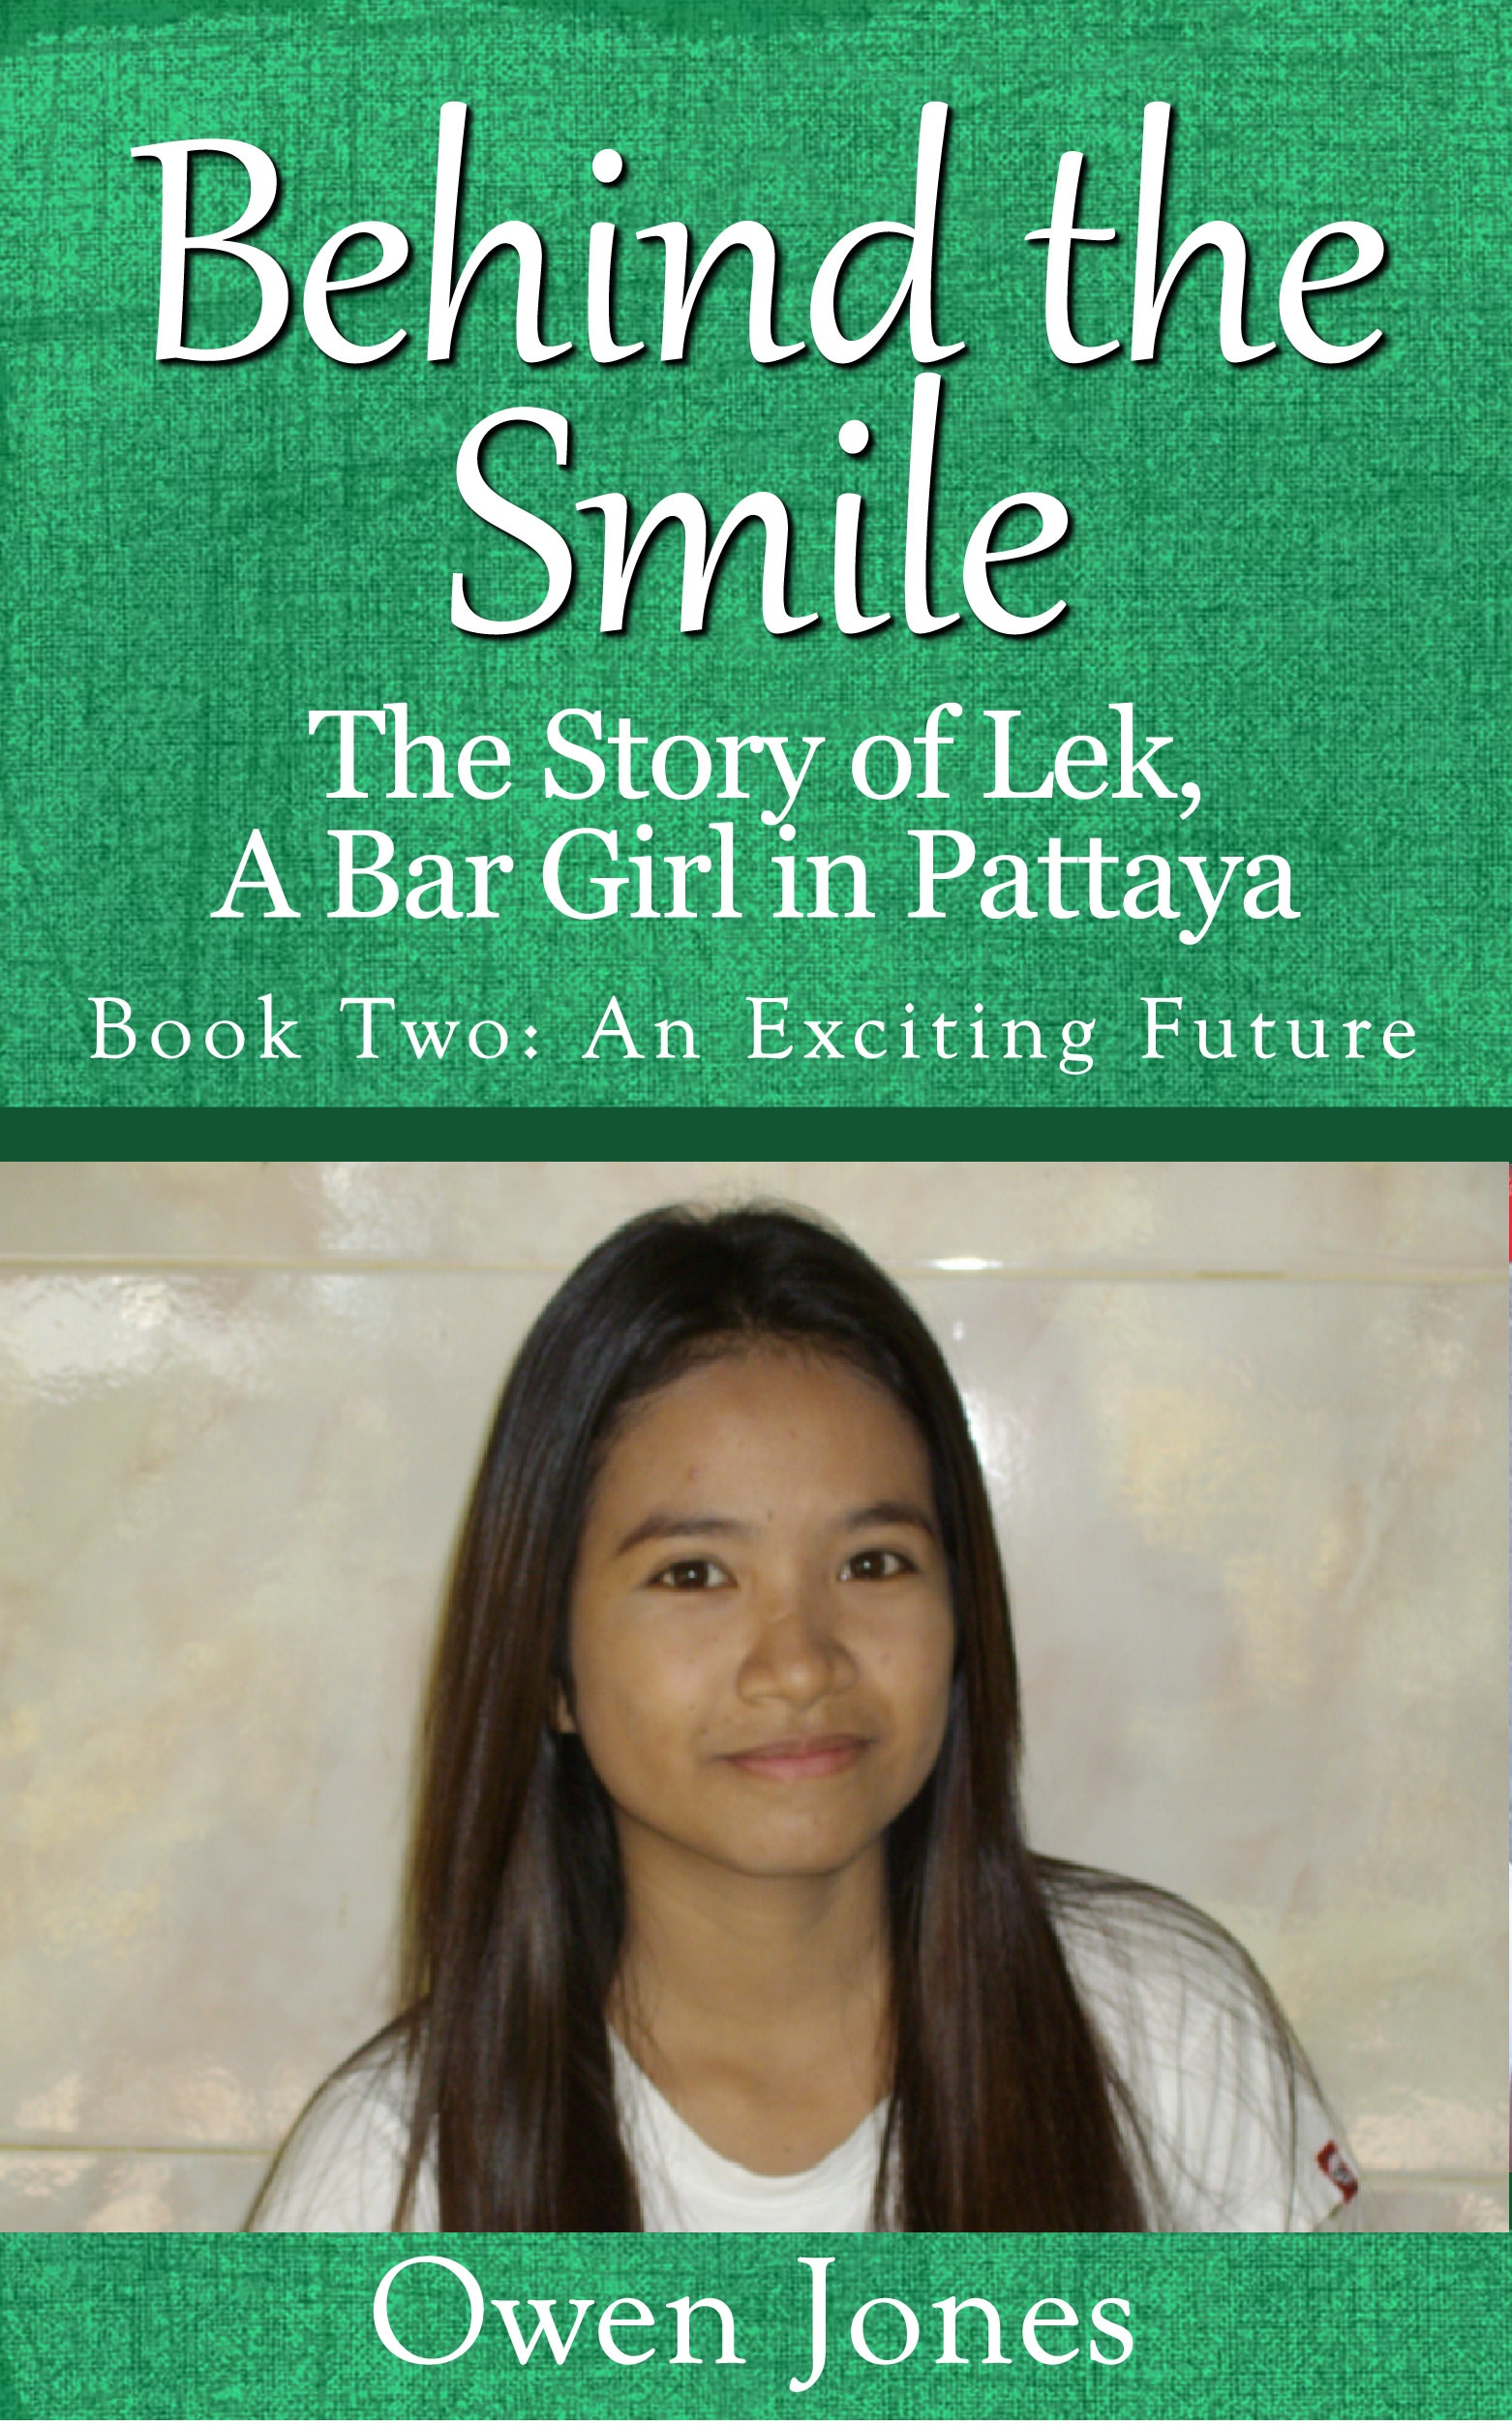 Behind The Smile - An Exciting Future